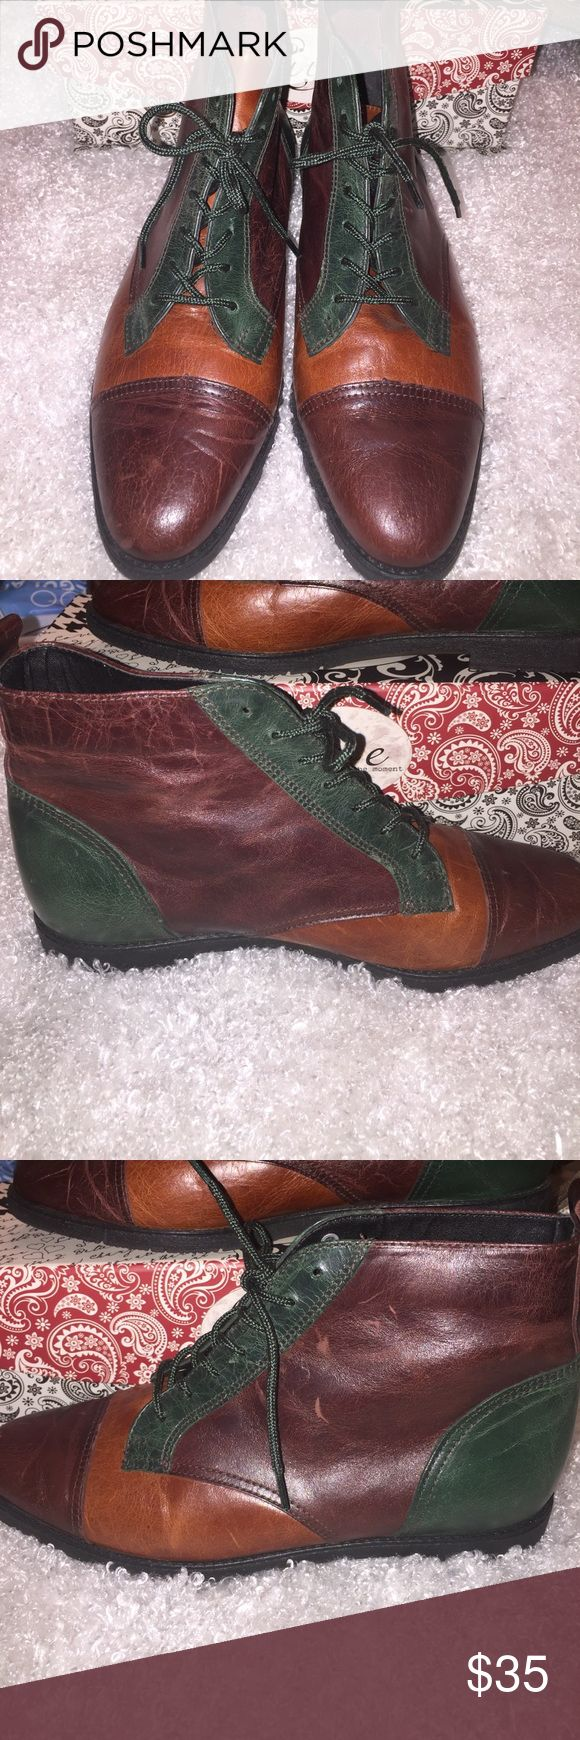 Vintage Hush Puppies Leather Ankle Boots Leather uppers Hush Puppies Ankle Boots- patchwork leather in deep green, wine and rust. 1990's. Left boot missing original insole.  Size 8W. Rubber soles. Vintage Shoes Ankle Boots & Booties